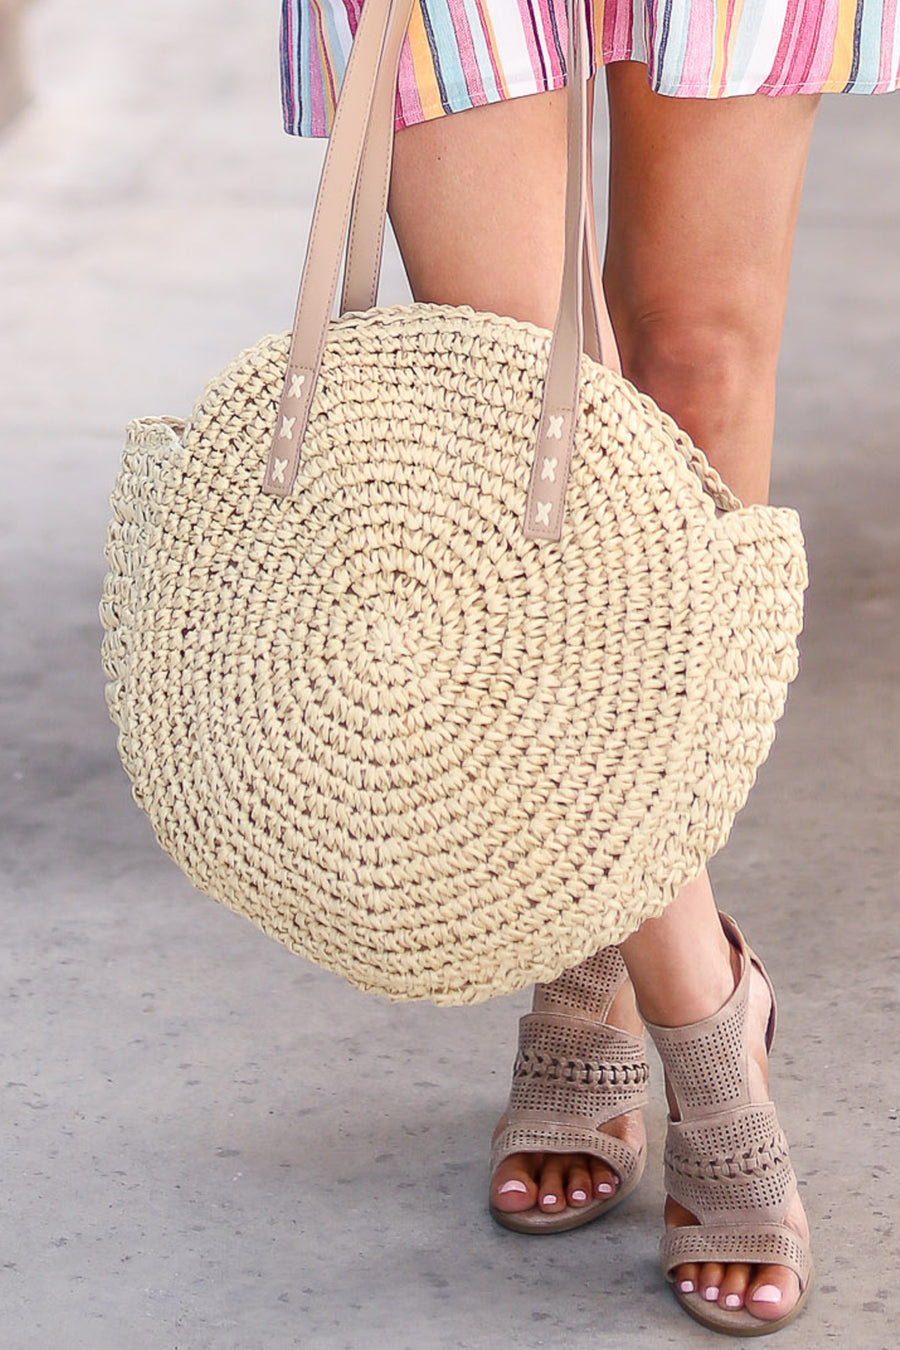 Hello Lovely Straw Bag - Natural color women's straw purse, Closet Candy Boutique 1